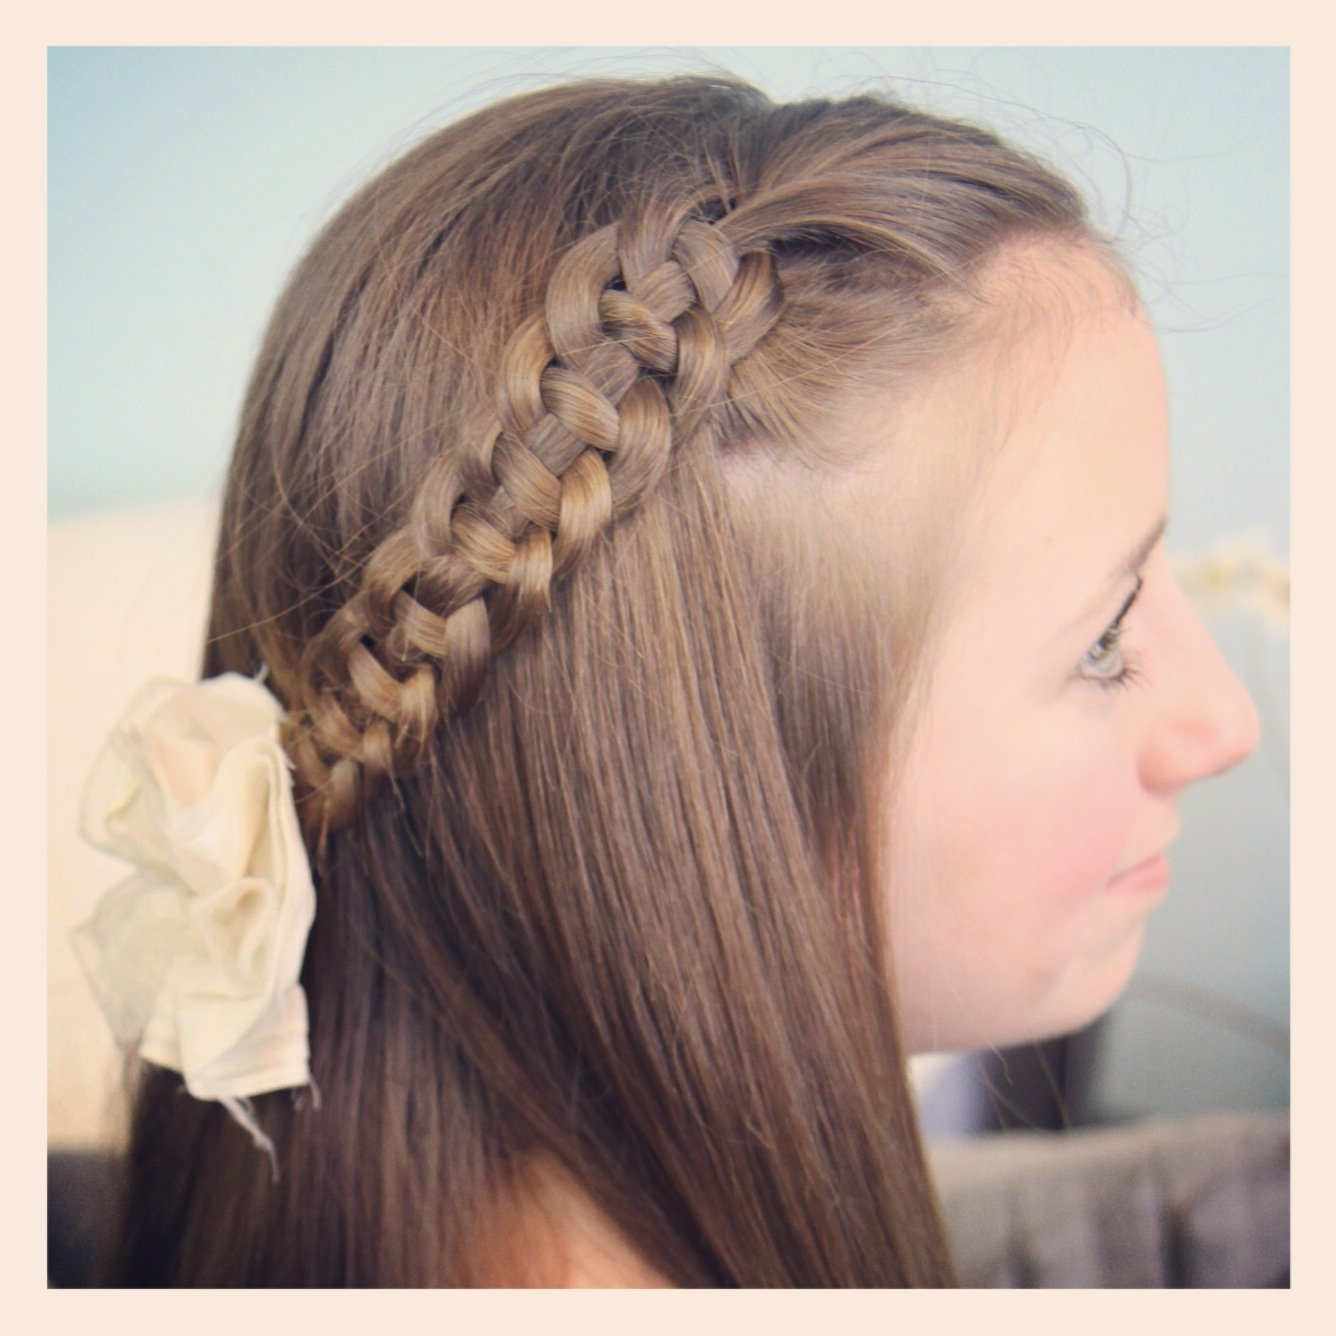 56 cute hairstyles for the girly girl in you | hairstylo